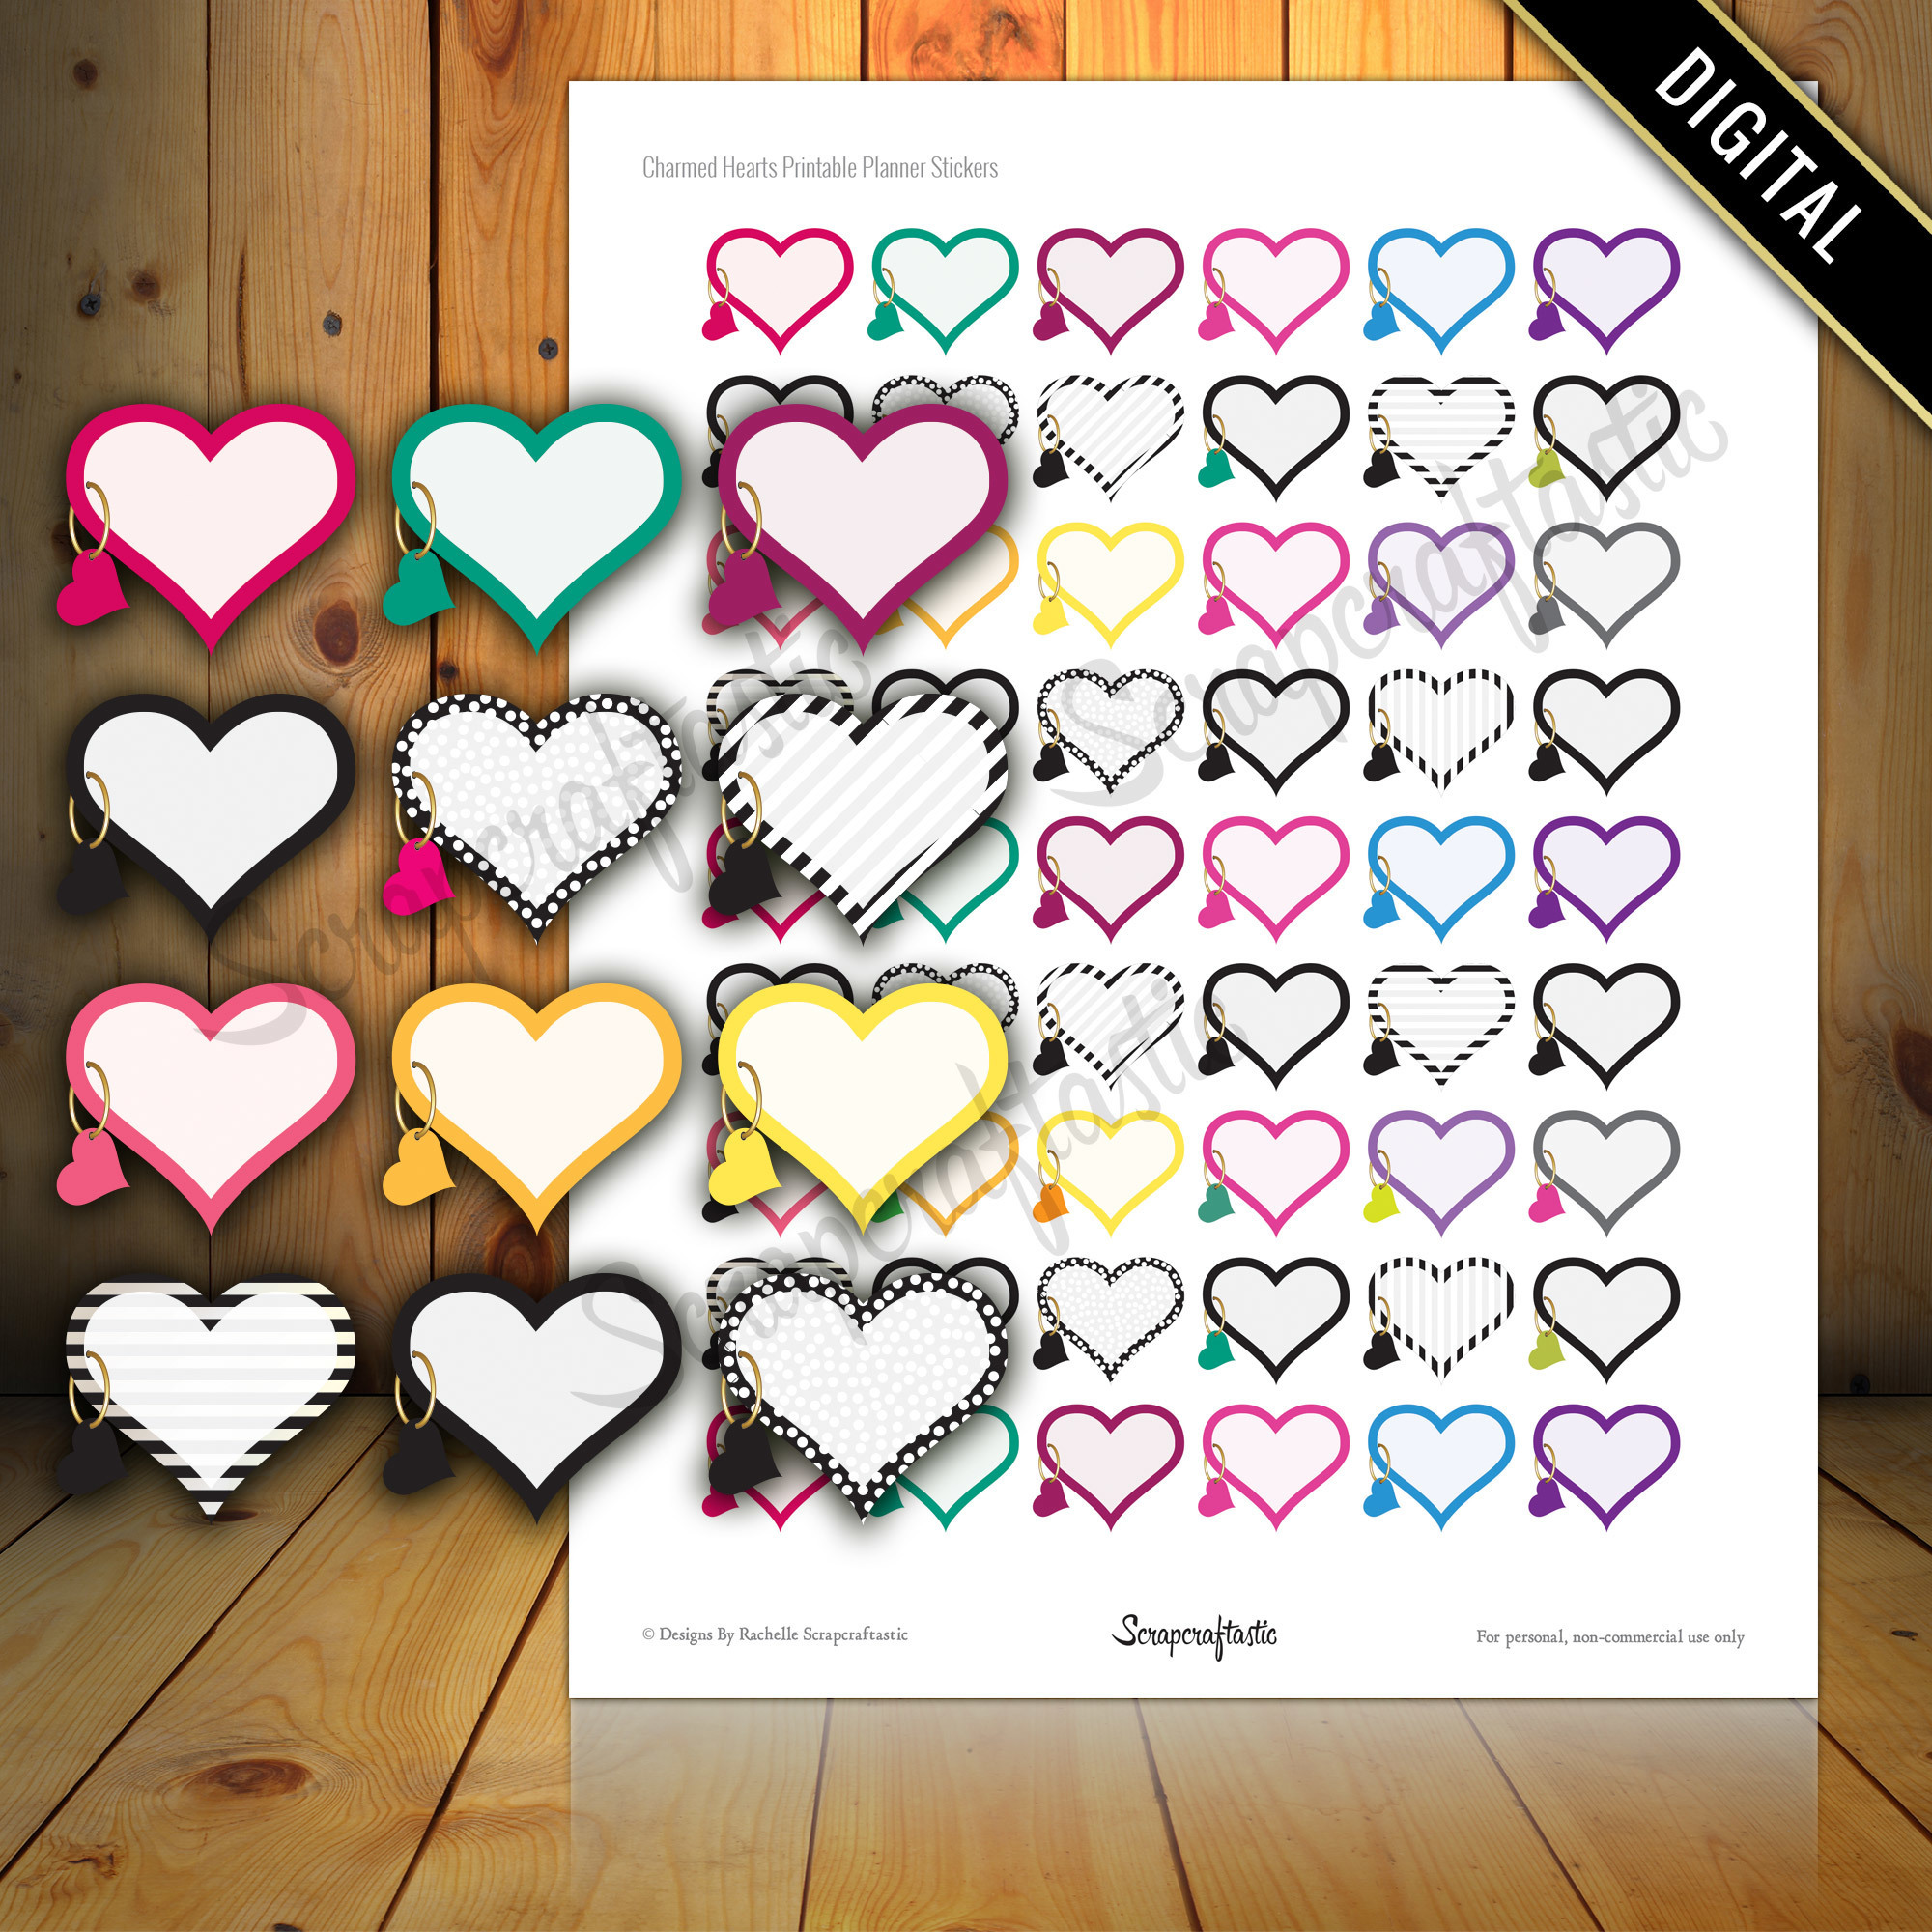 Charmed Hearts Printable Planner Stickers for Paper Planners, Agendas and Organizers 04061